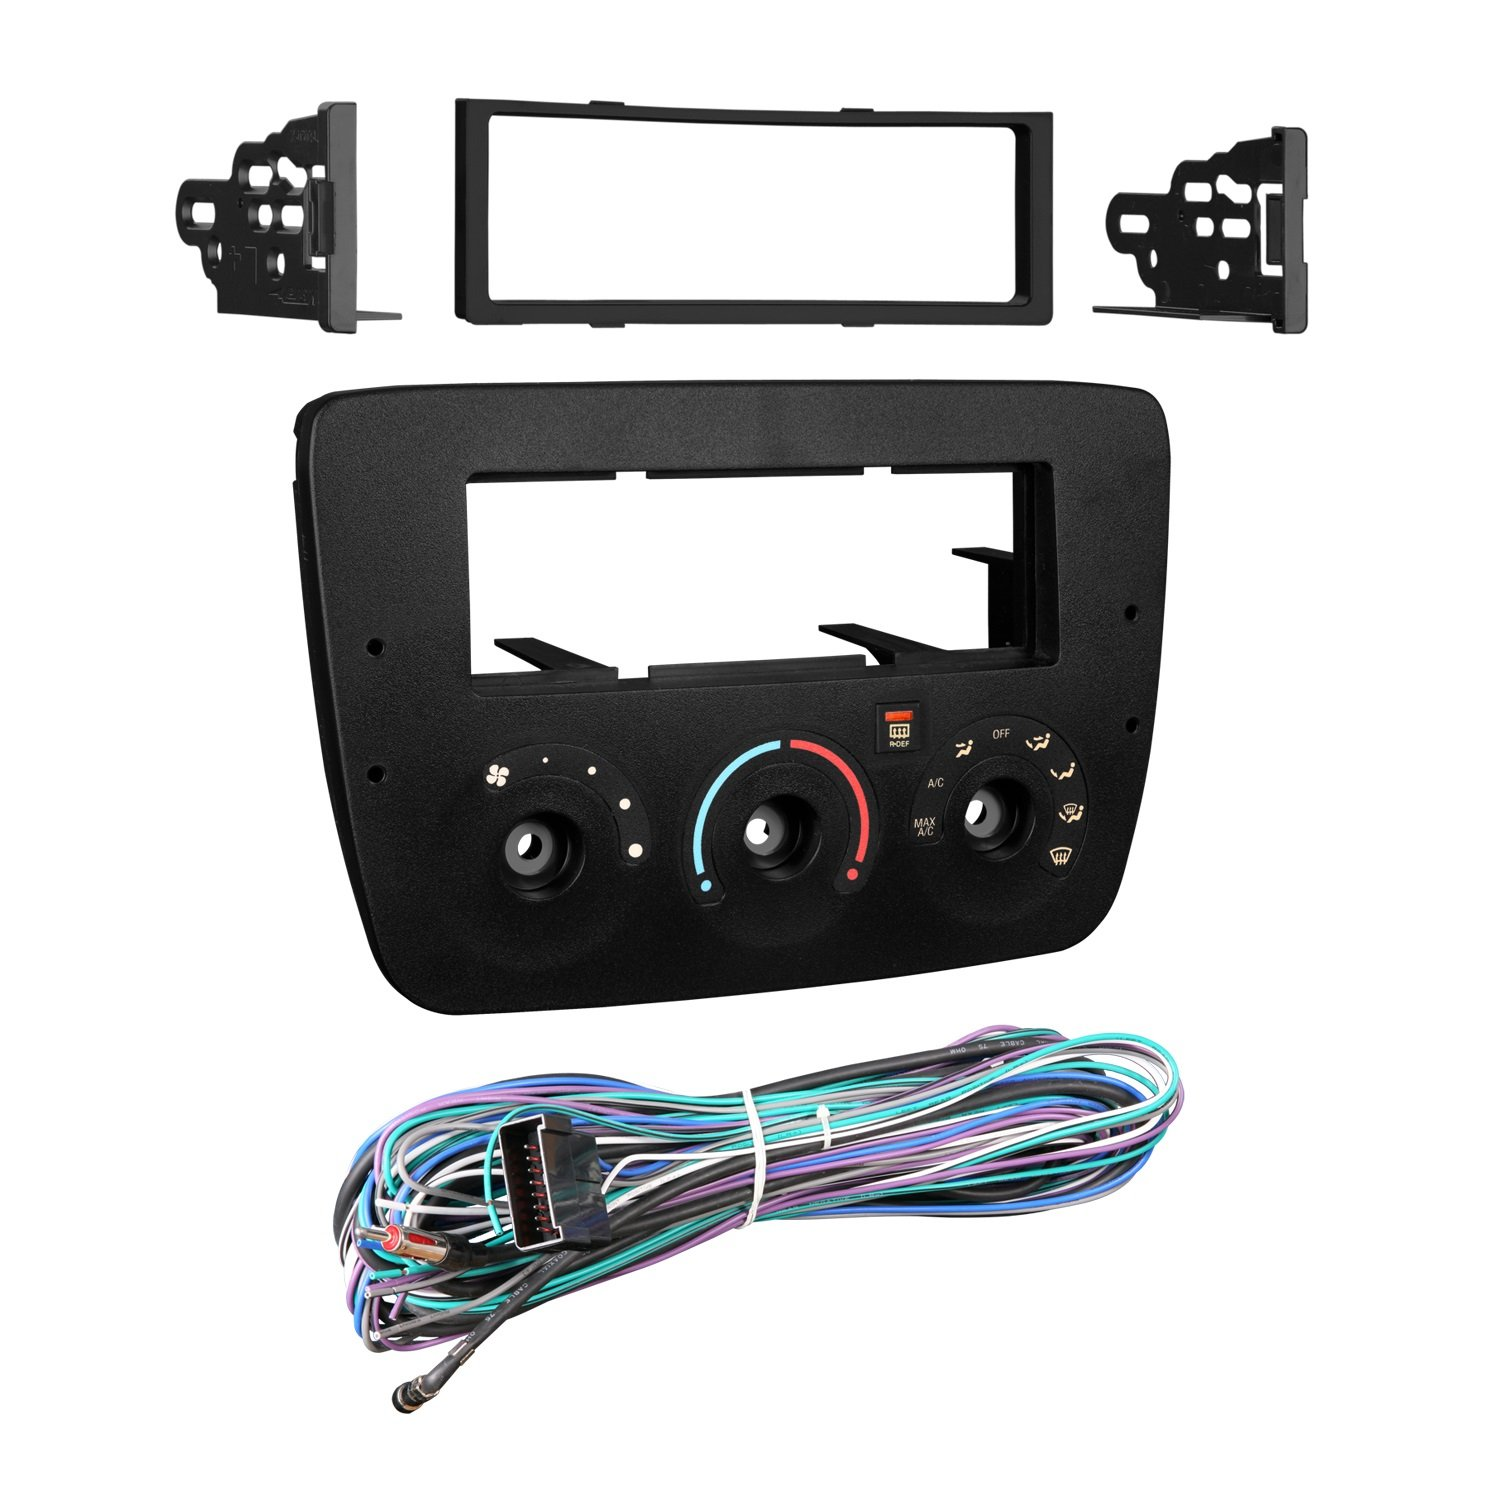 718FgFG3GhL._SL1500_ amazon com metra 99 5716 dash kit for taurus sable 00 03 kit with Aftermarket Radio Wiring Harness at bayanpartner.co